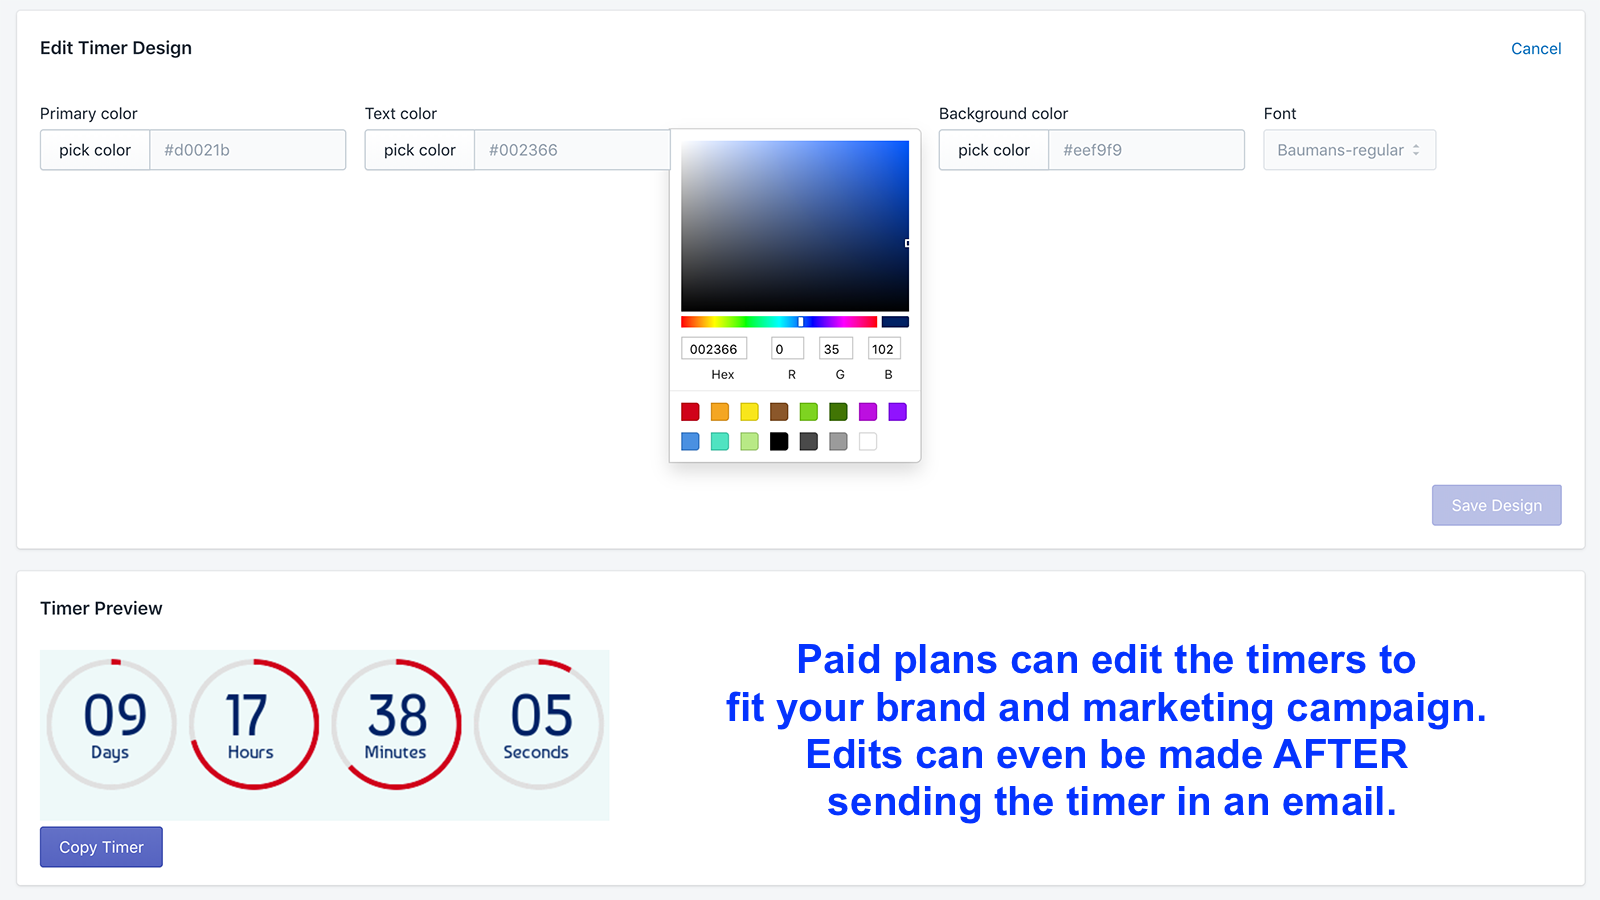 Edit the timer to fit your brand with a paid plan.